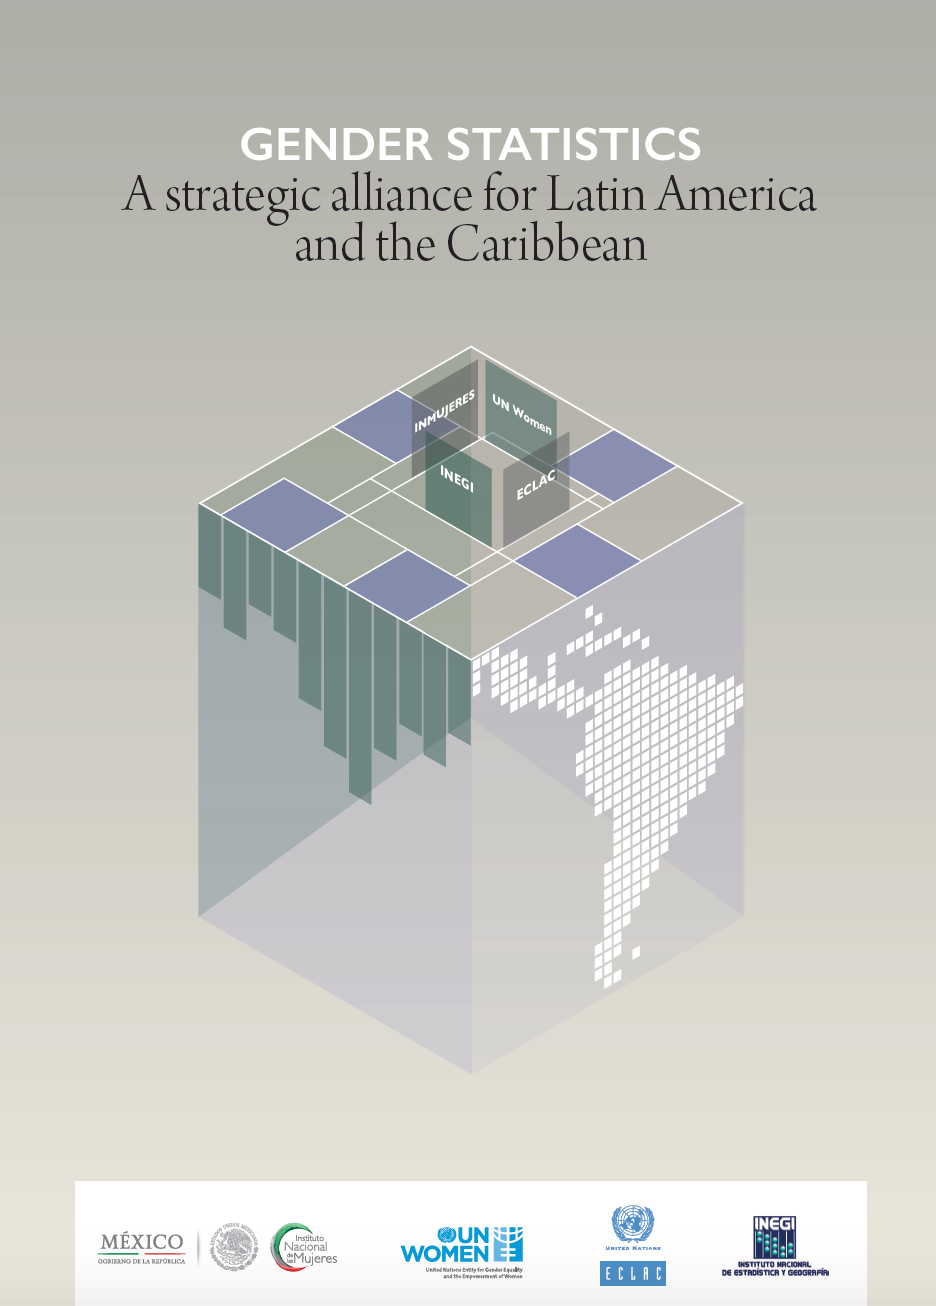 Gender Statistics. A strategic alliance for Latin America and the Caribbean